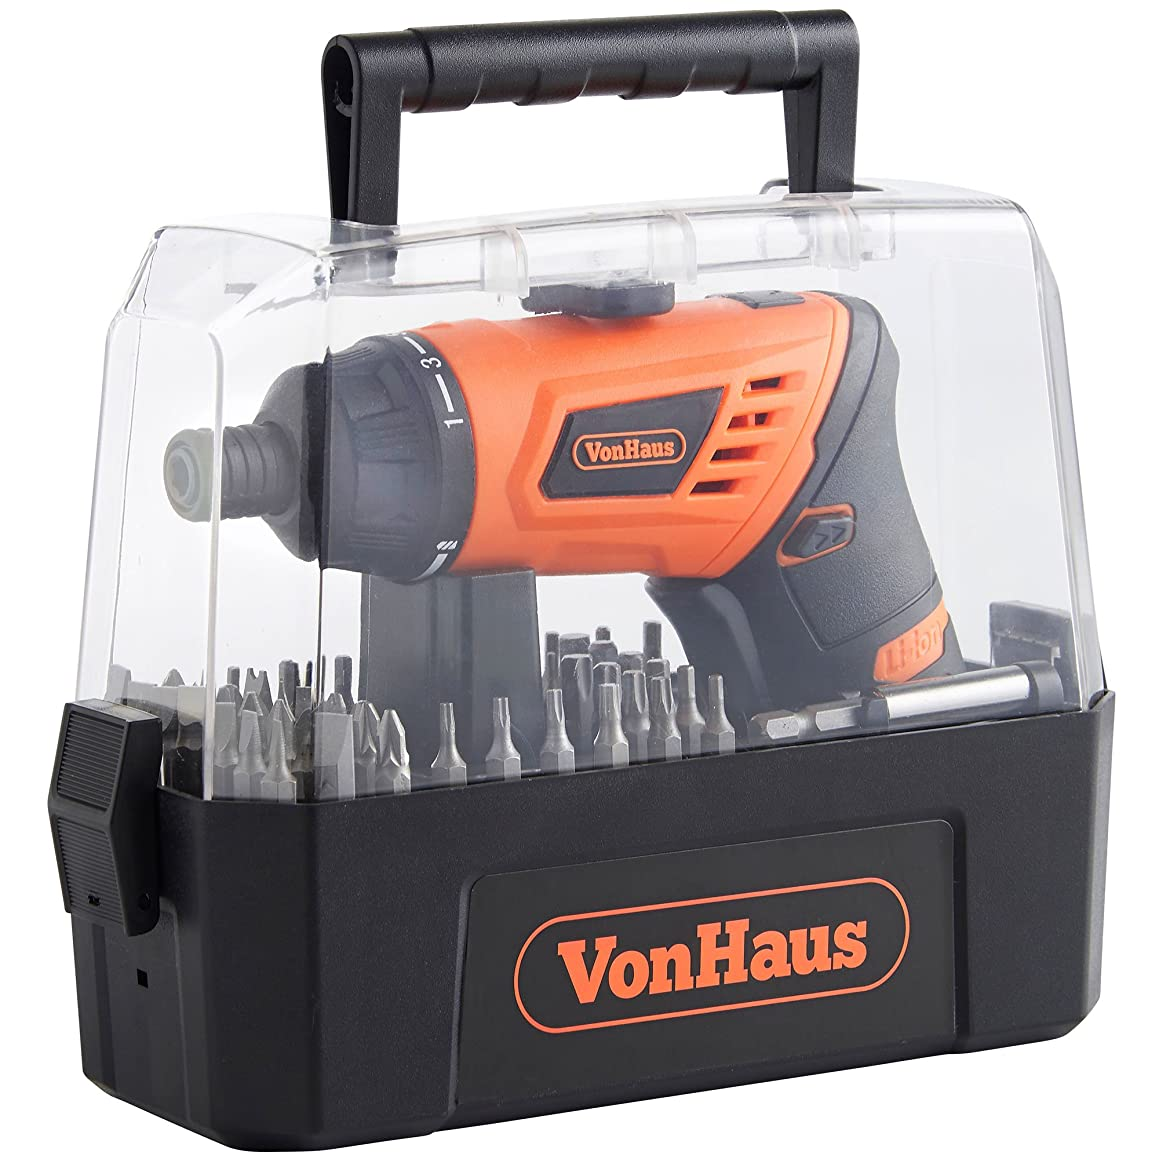 VonHaus Cordless Electric Screwdriver 3.6V Lithium-Ion MAX Torque 5 N.m Rechargeable LED Light with 3-Position Handle and 50 Screwdriver Bits Accessory Set in Case